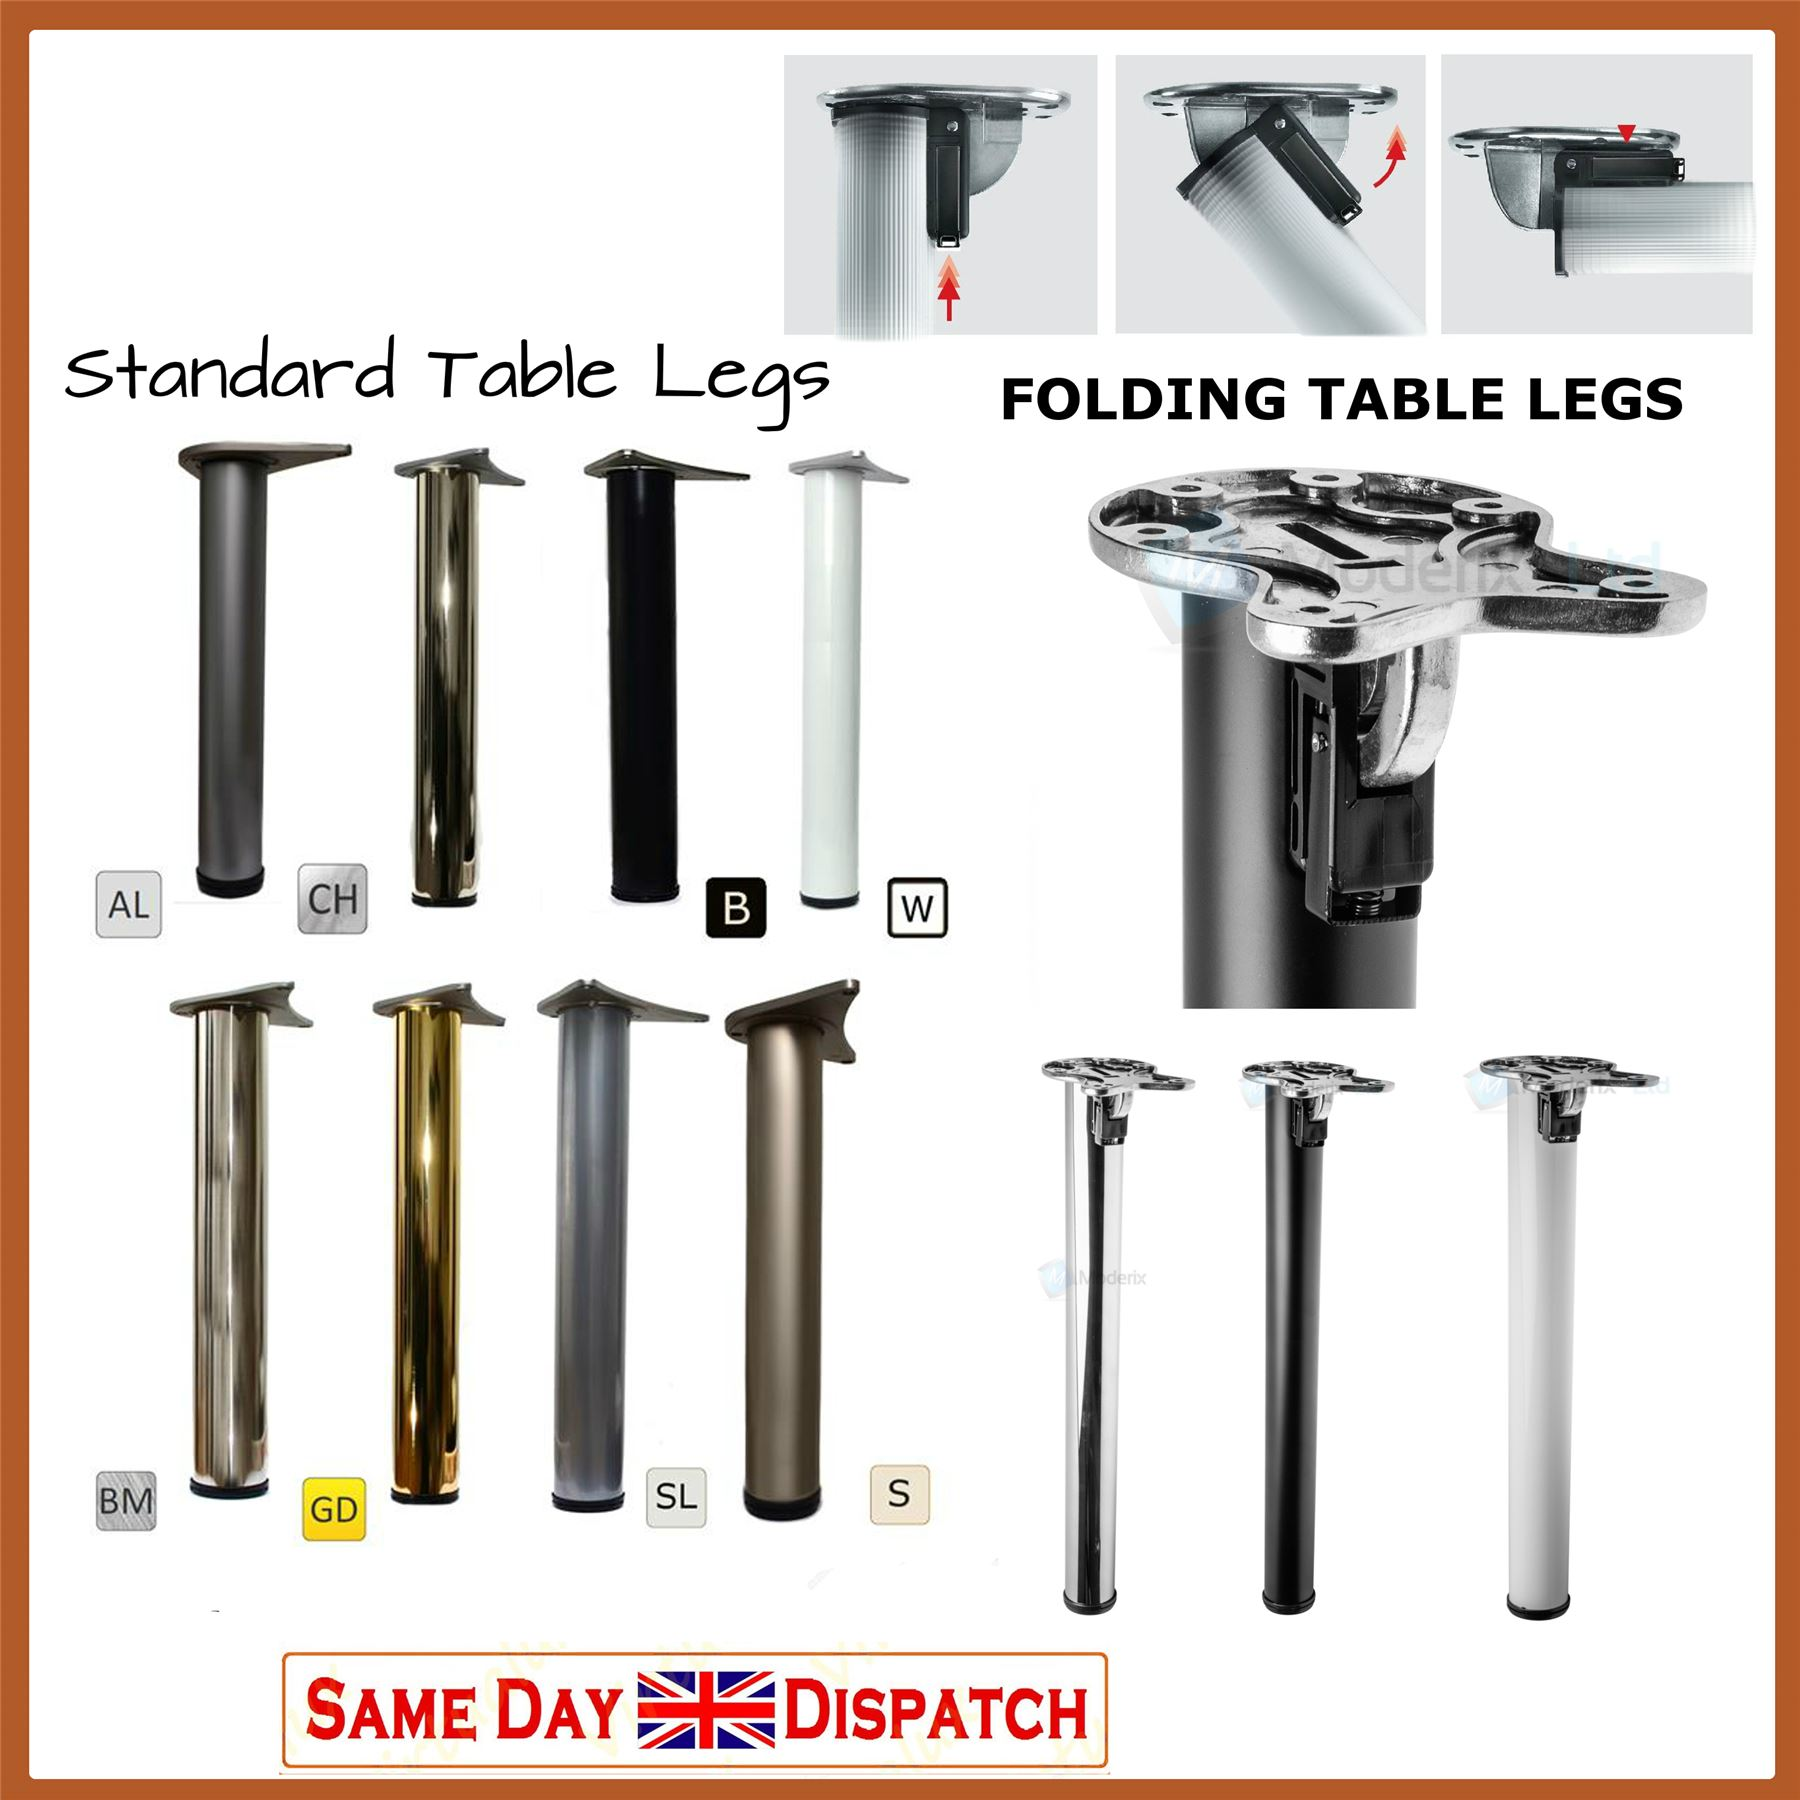 Breakfast Bar With Stainless Steel Tripod Leg photo - 6